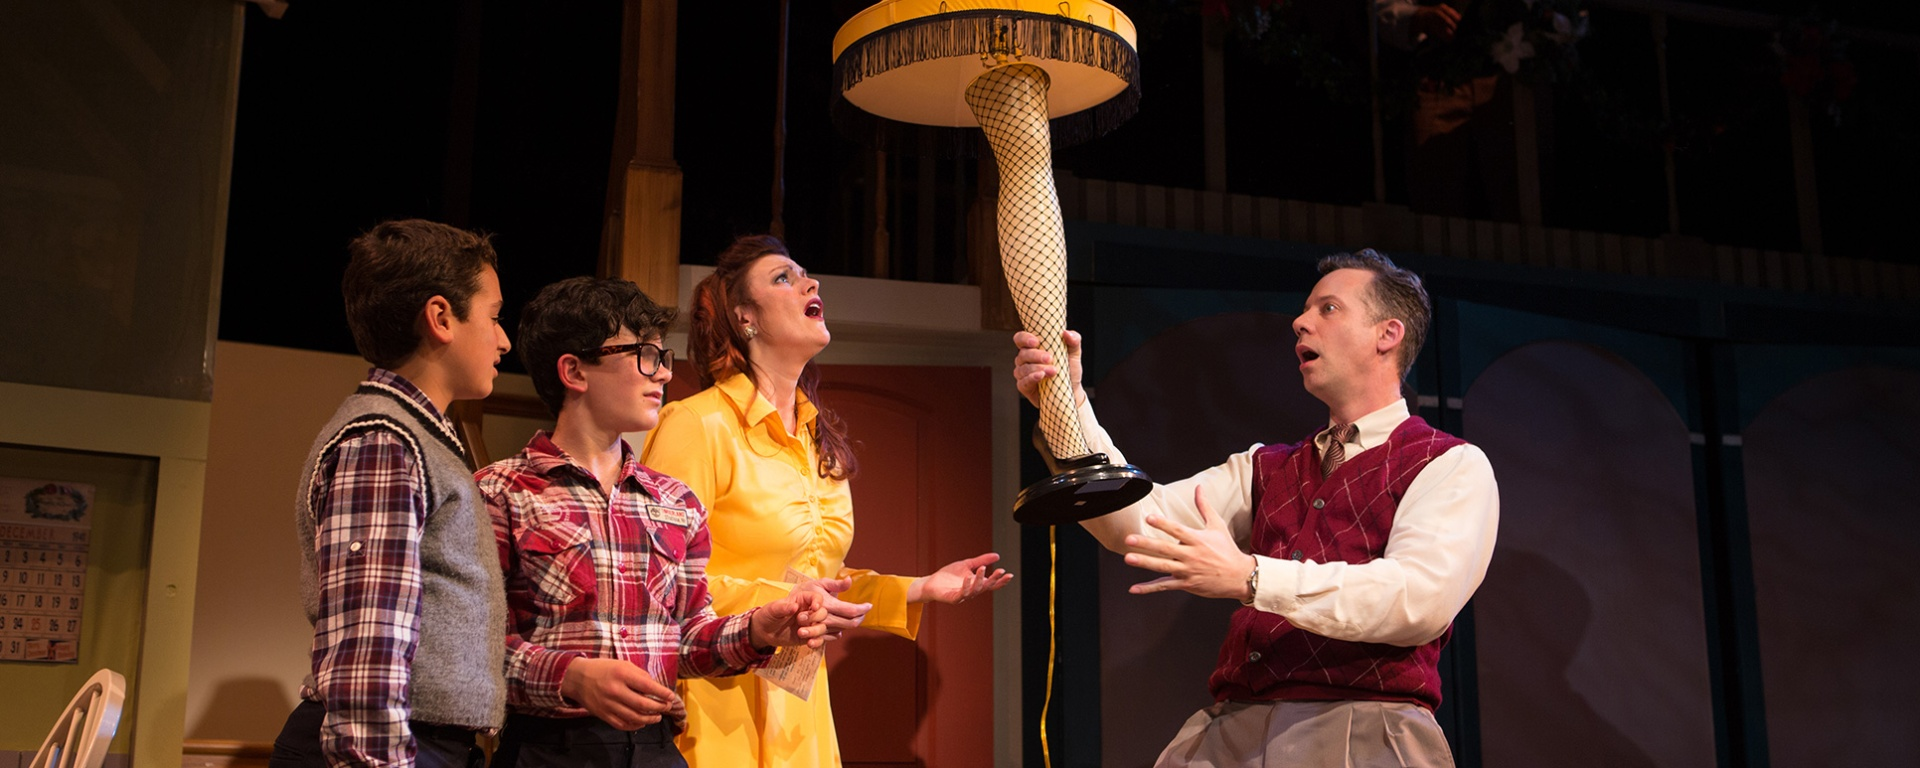 A Christmas Story Musical.Same Old Story A Christmas Story The Musical At Sf